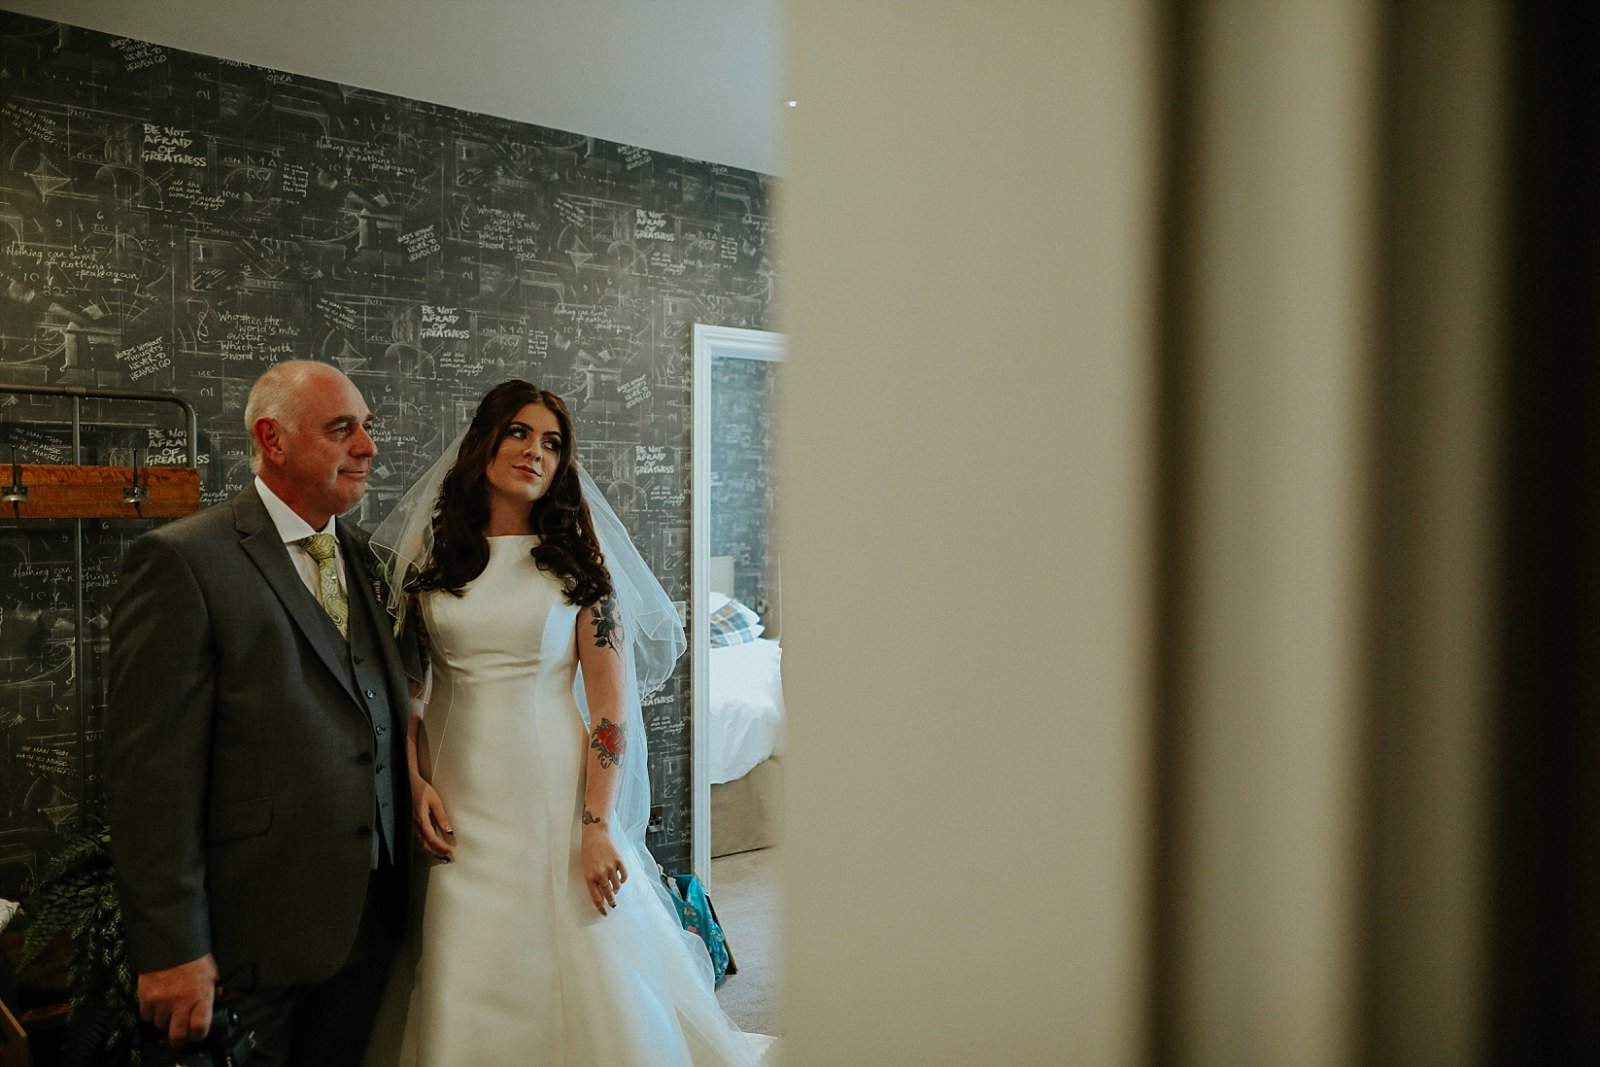 proud dad with his daughter getting married